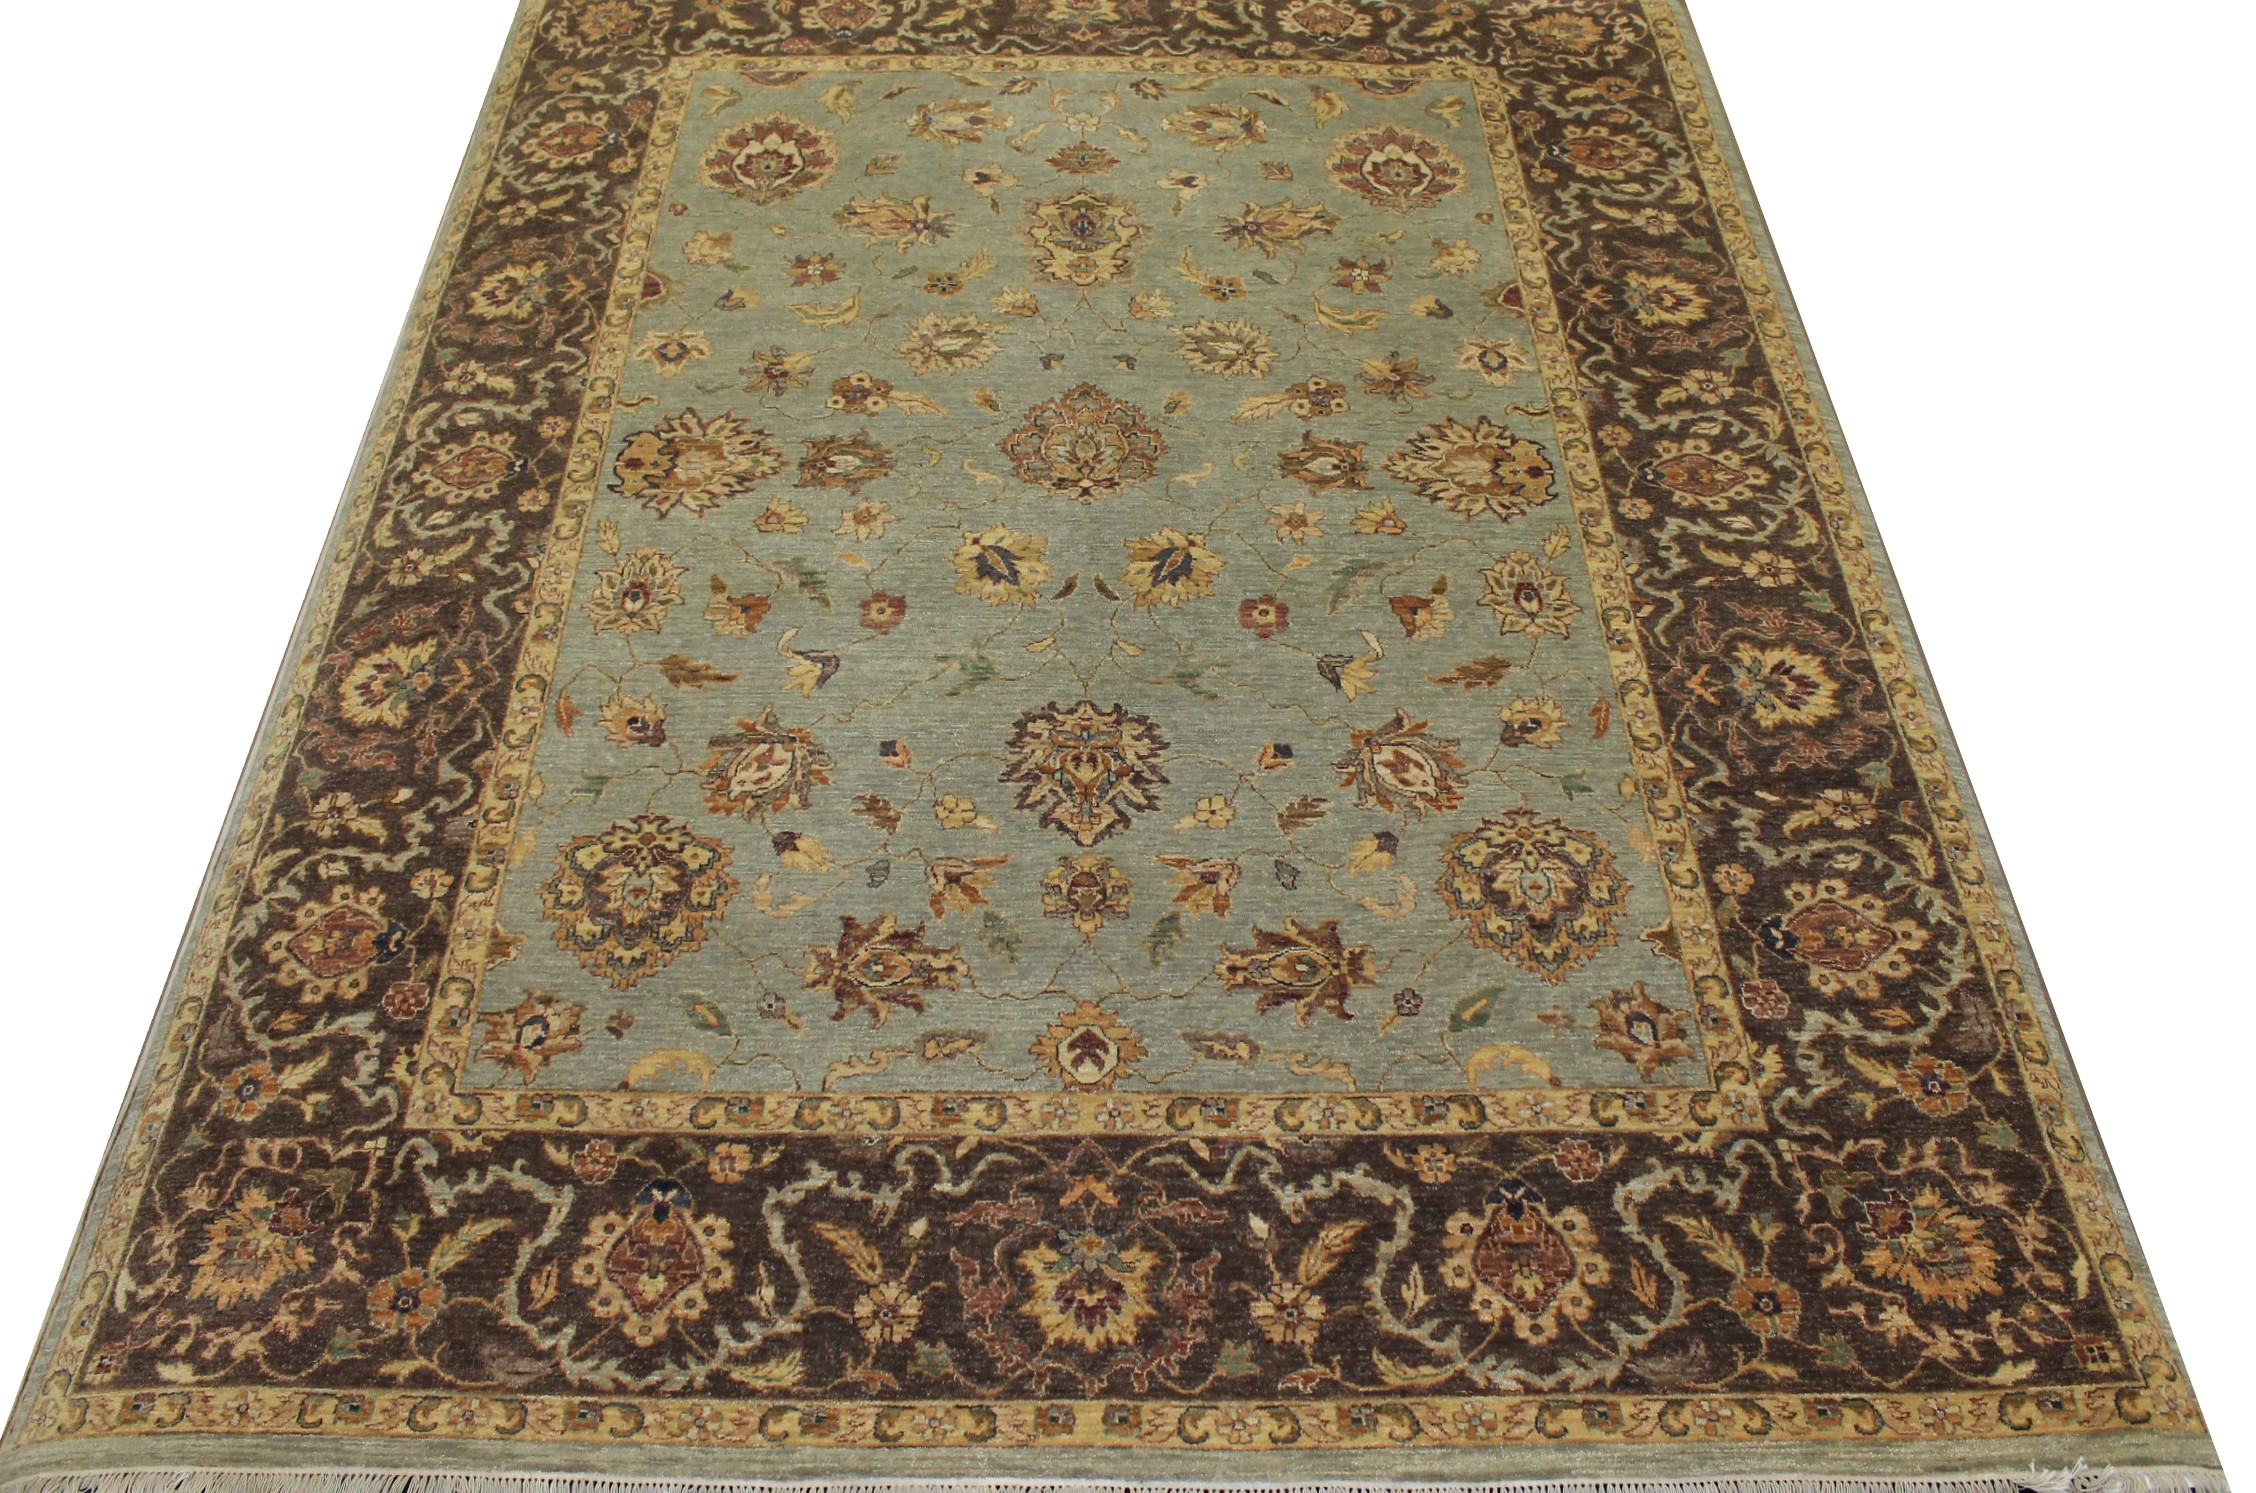 8x10 Traditional Hand Knotted Wool Area Rug - MR12932